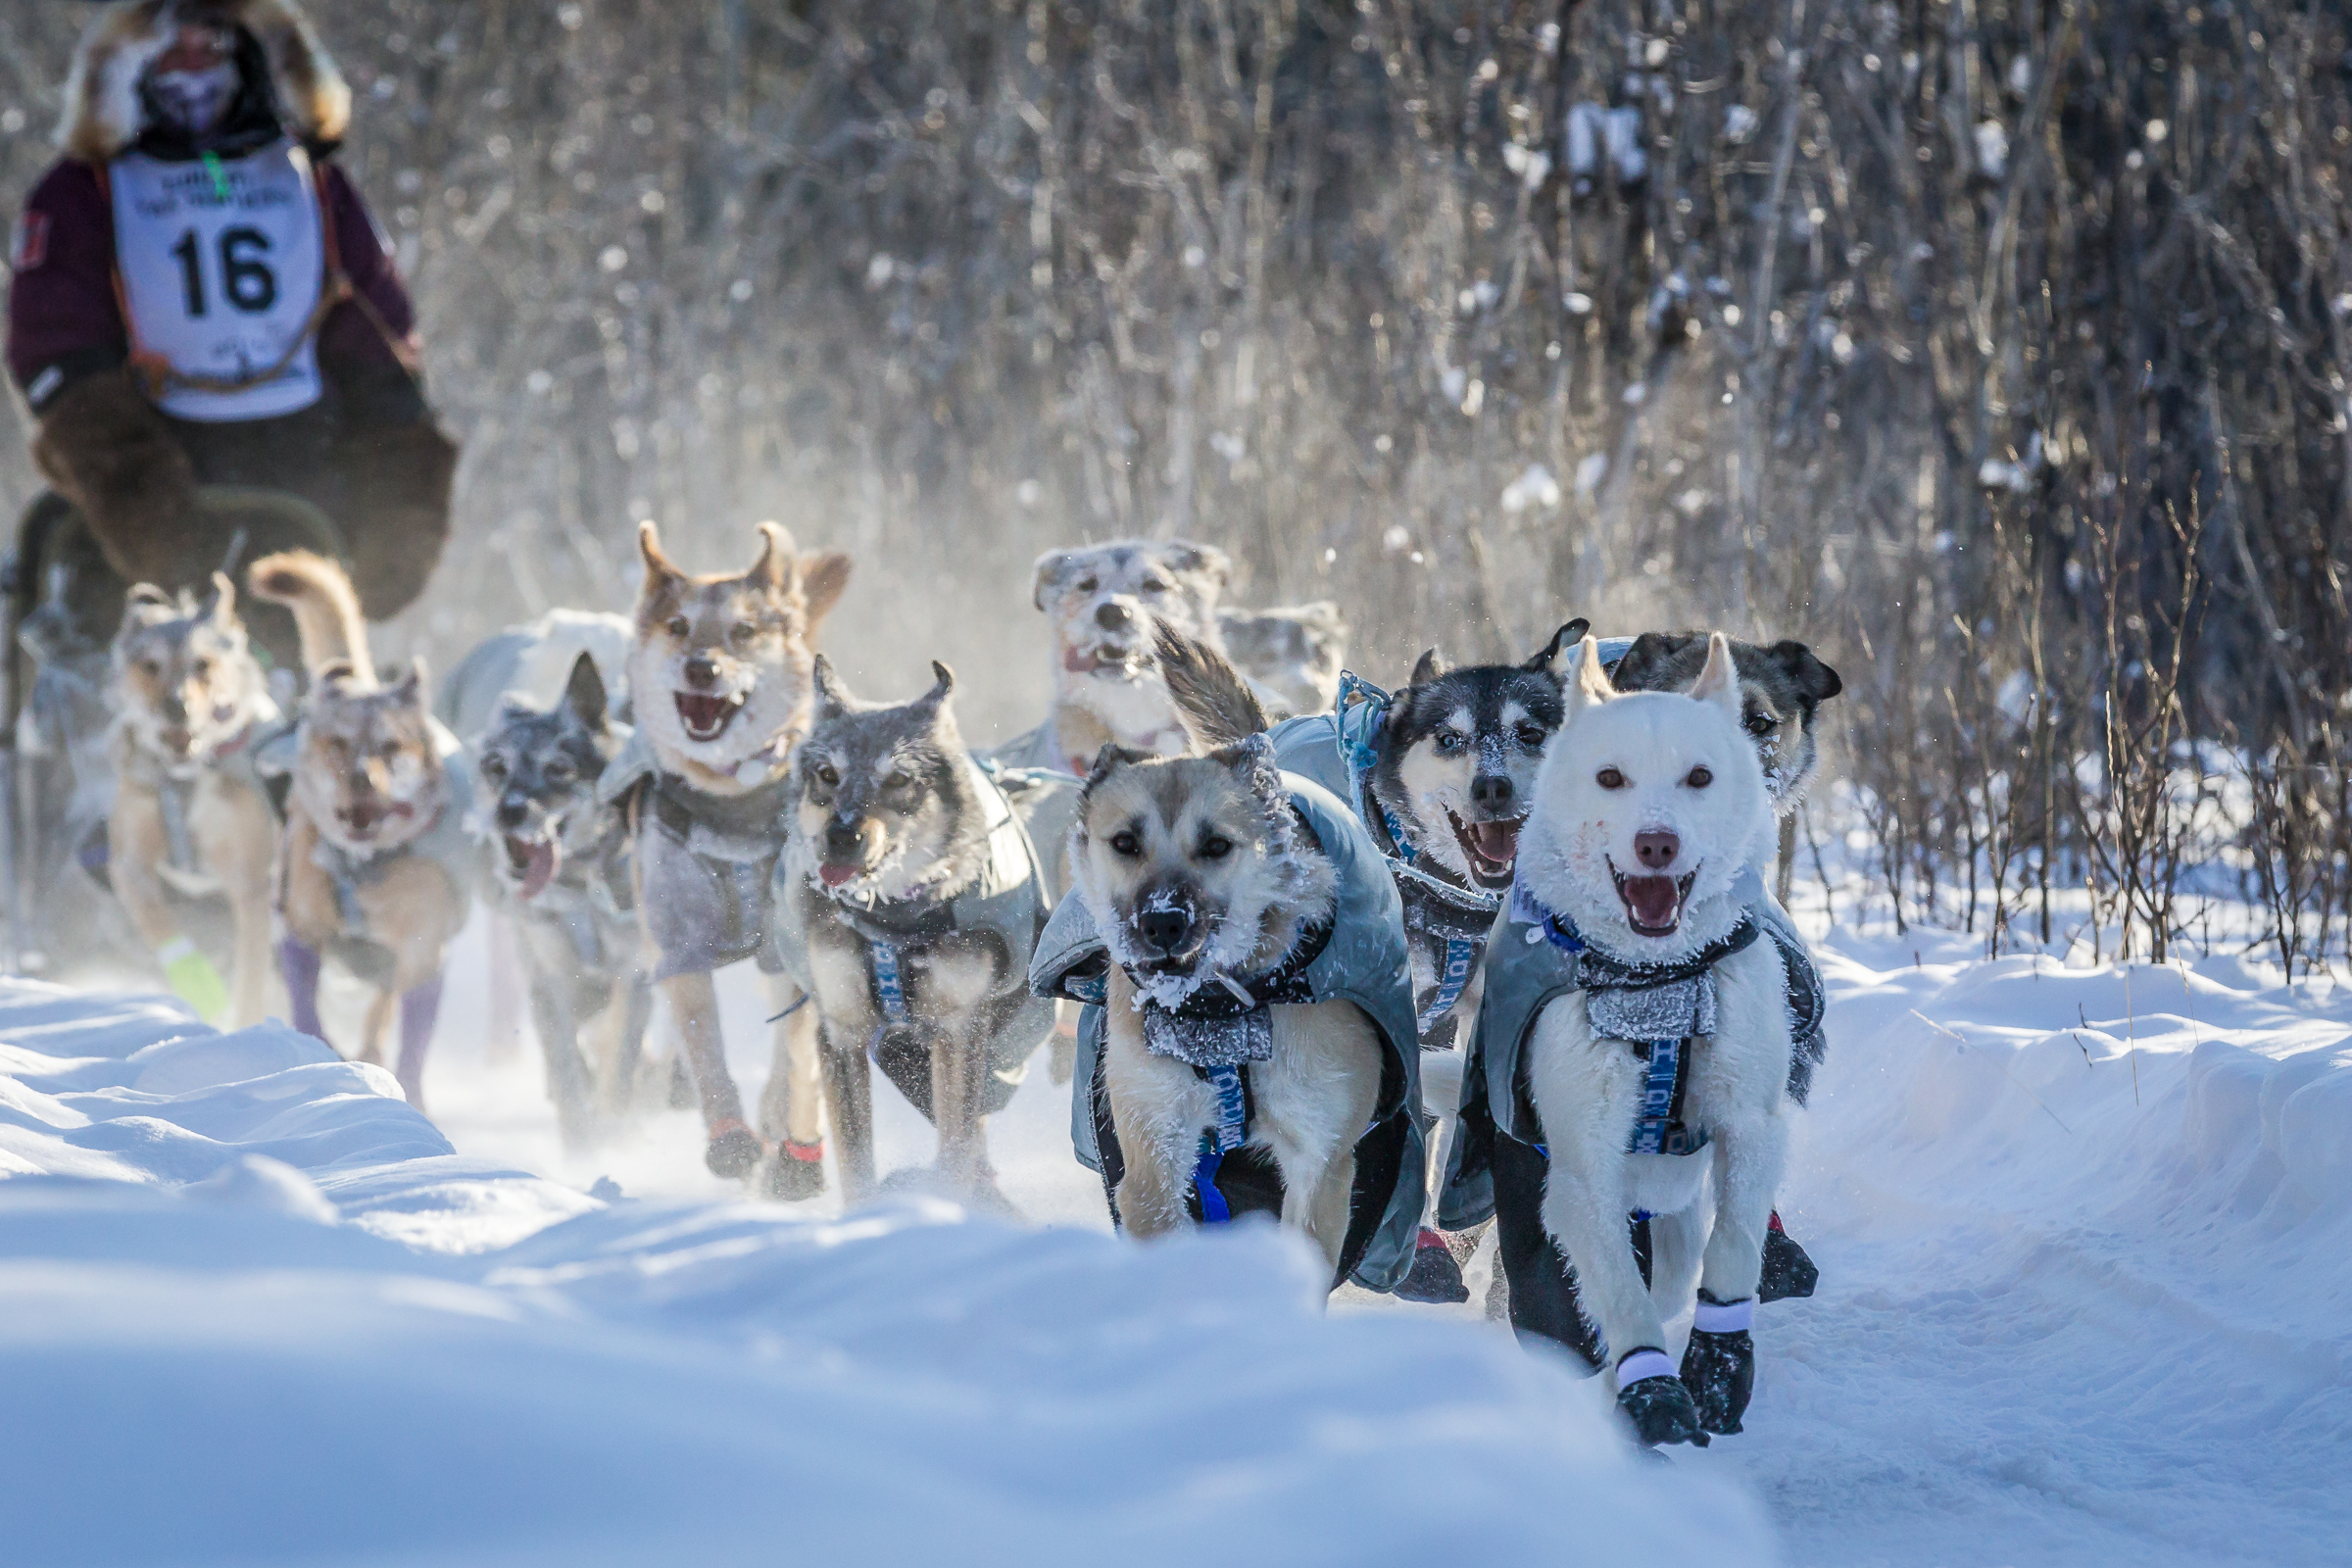 Cartel at start of Yukon Quest- Photo taken by Scott Chesney